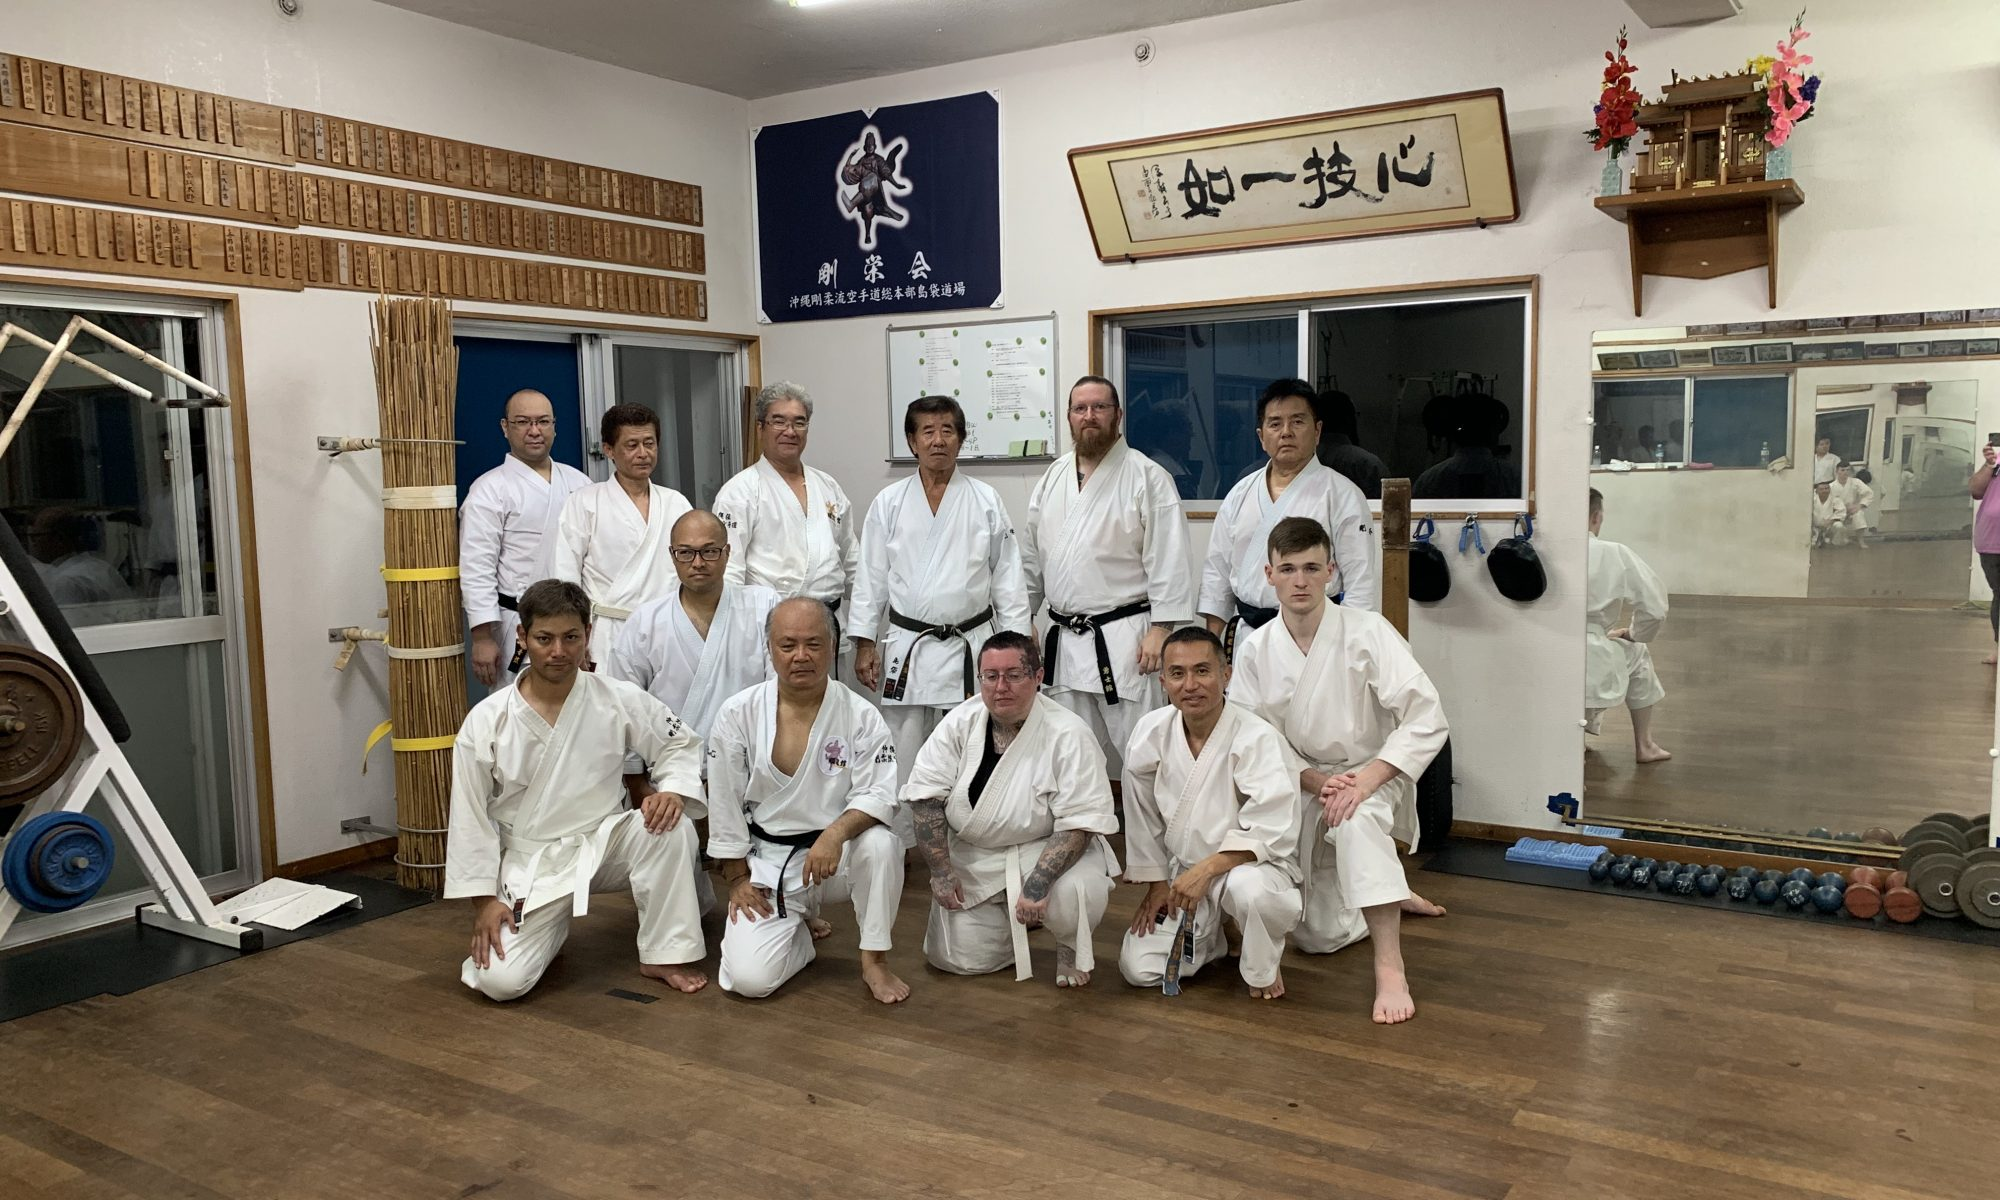 Okinawa Gojuryu Karate-do Goeikai USA